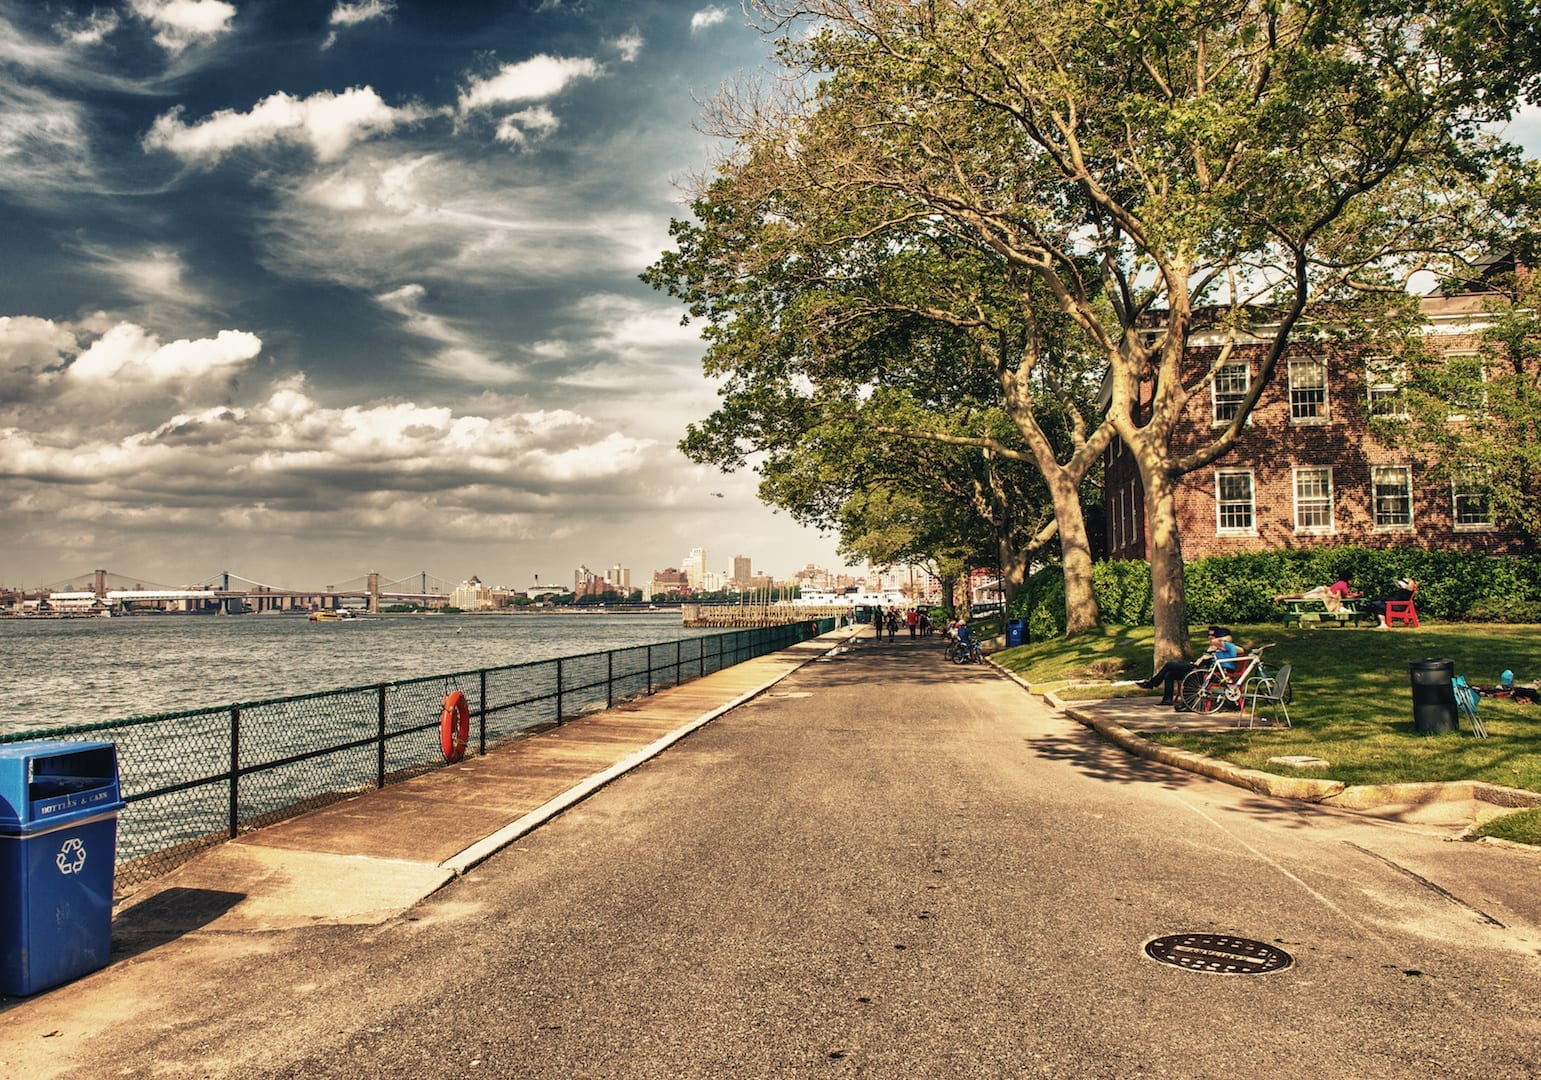 Governor's Island sea view in summer - New York